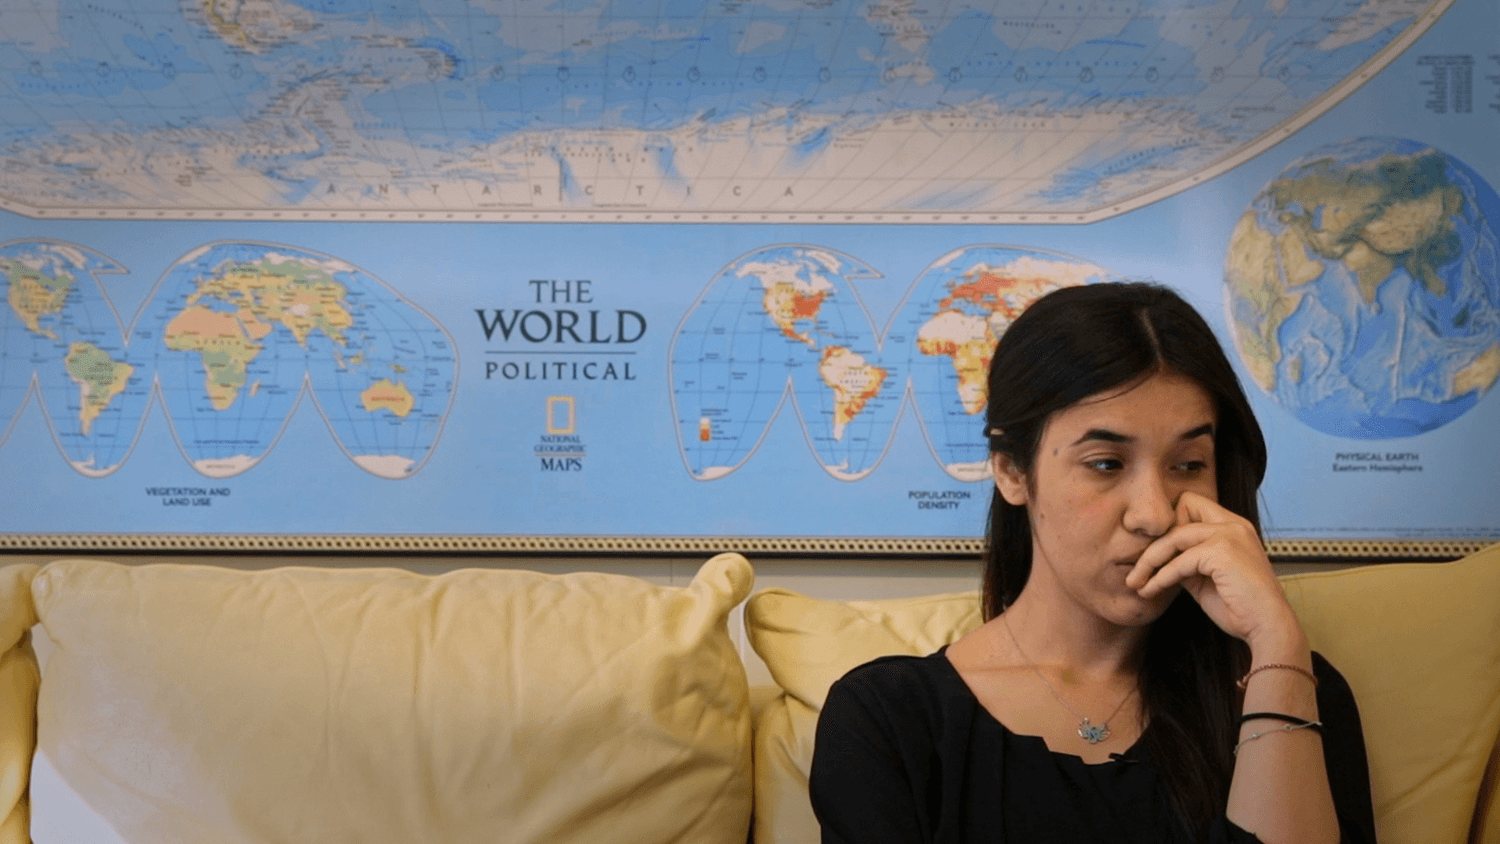 Nadia Murad sits in the UNODC office, preparing for an upcoming speech at the UN.